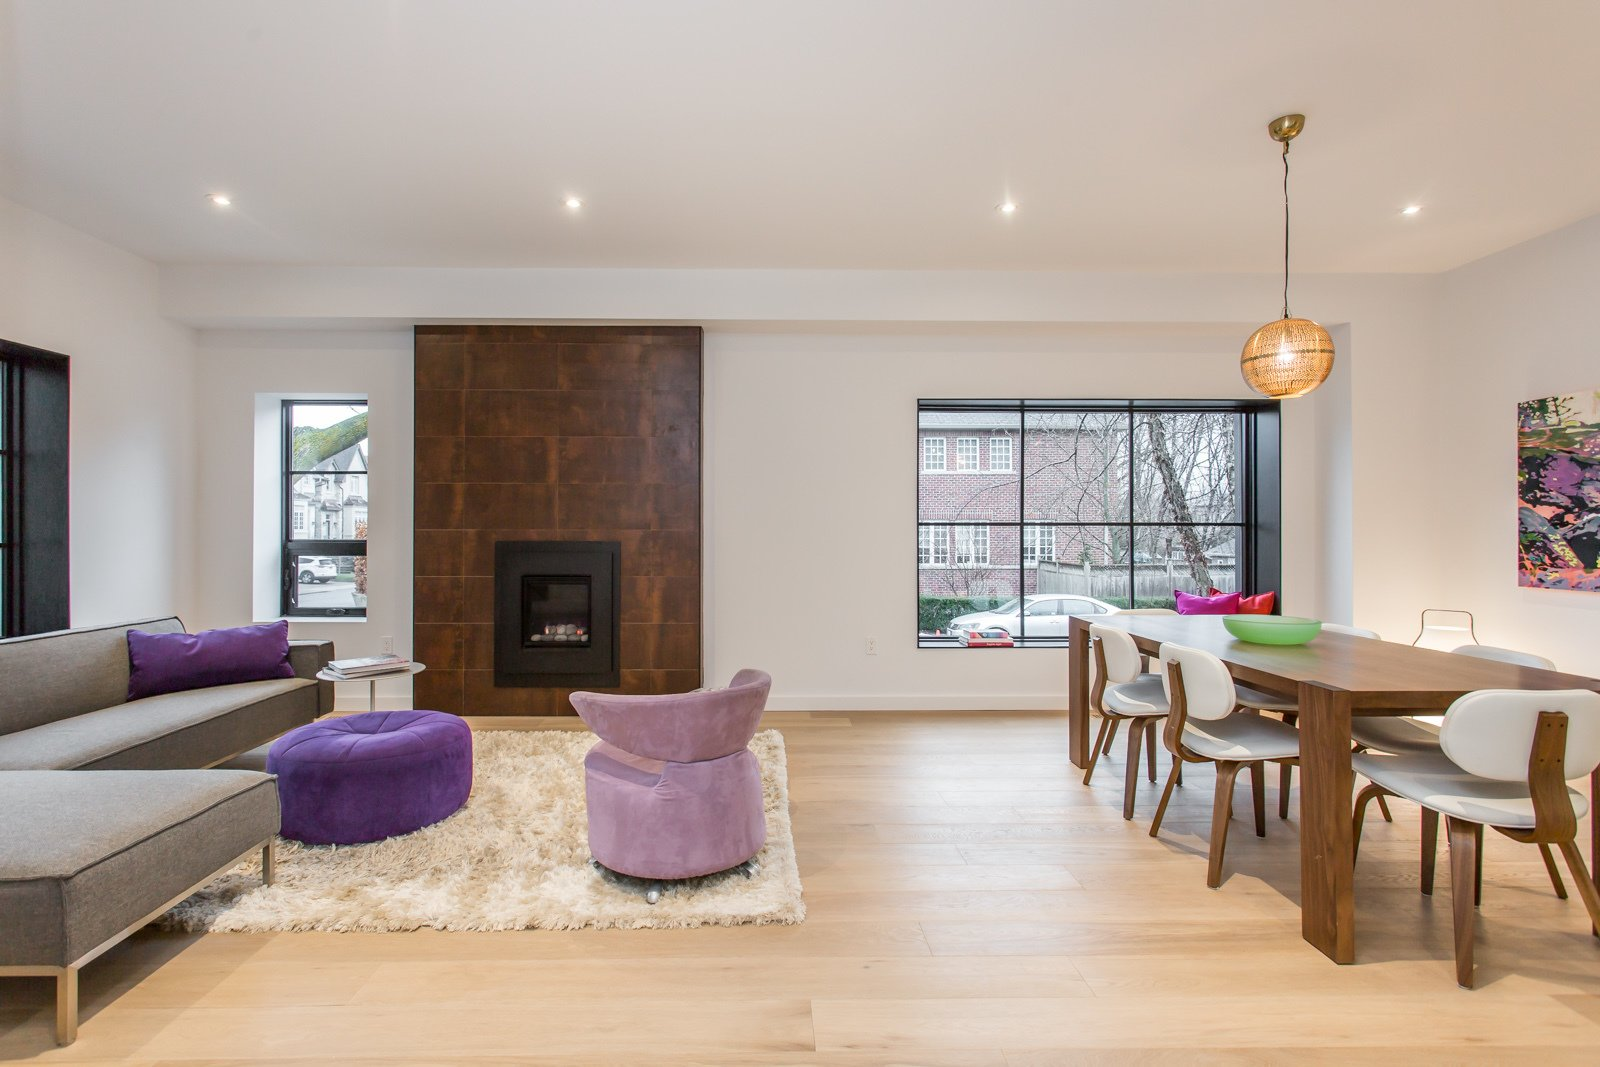 Living room and dining room benefit from big window openings that bring light in.  Manor Road house